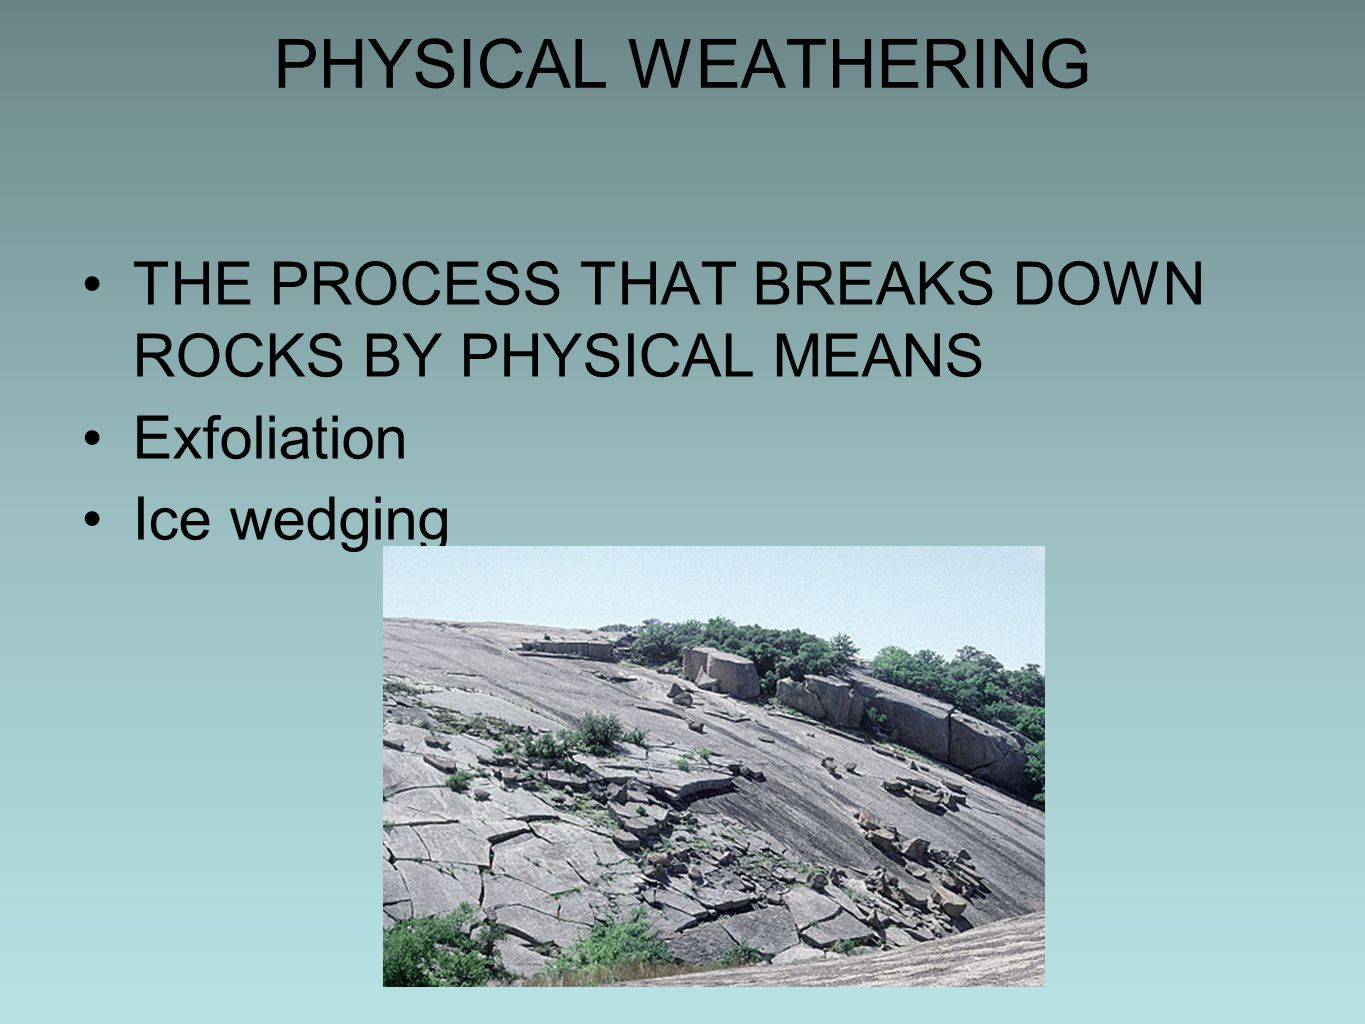 PHYSICAL WEATHERING THE PROCESS THAT BREAKS DOWN ROCKS BY PHYSICAL MEANS Exfoliation Ice wedging